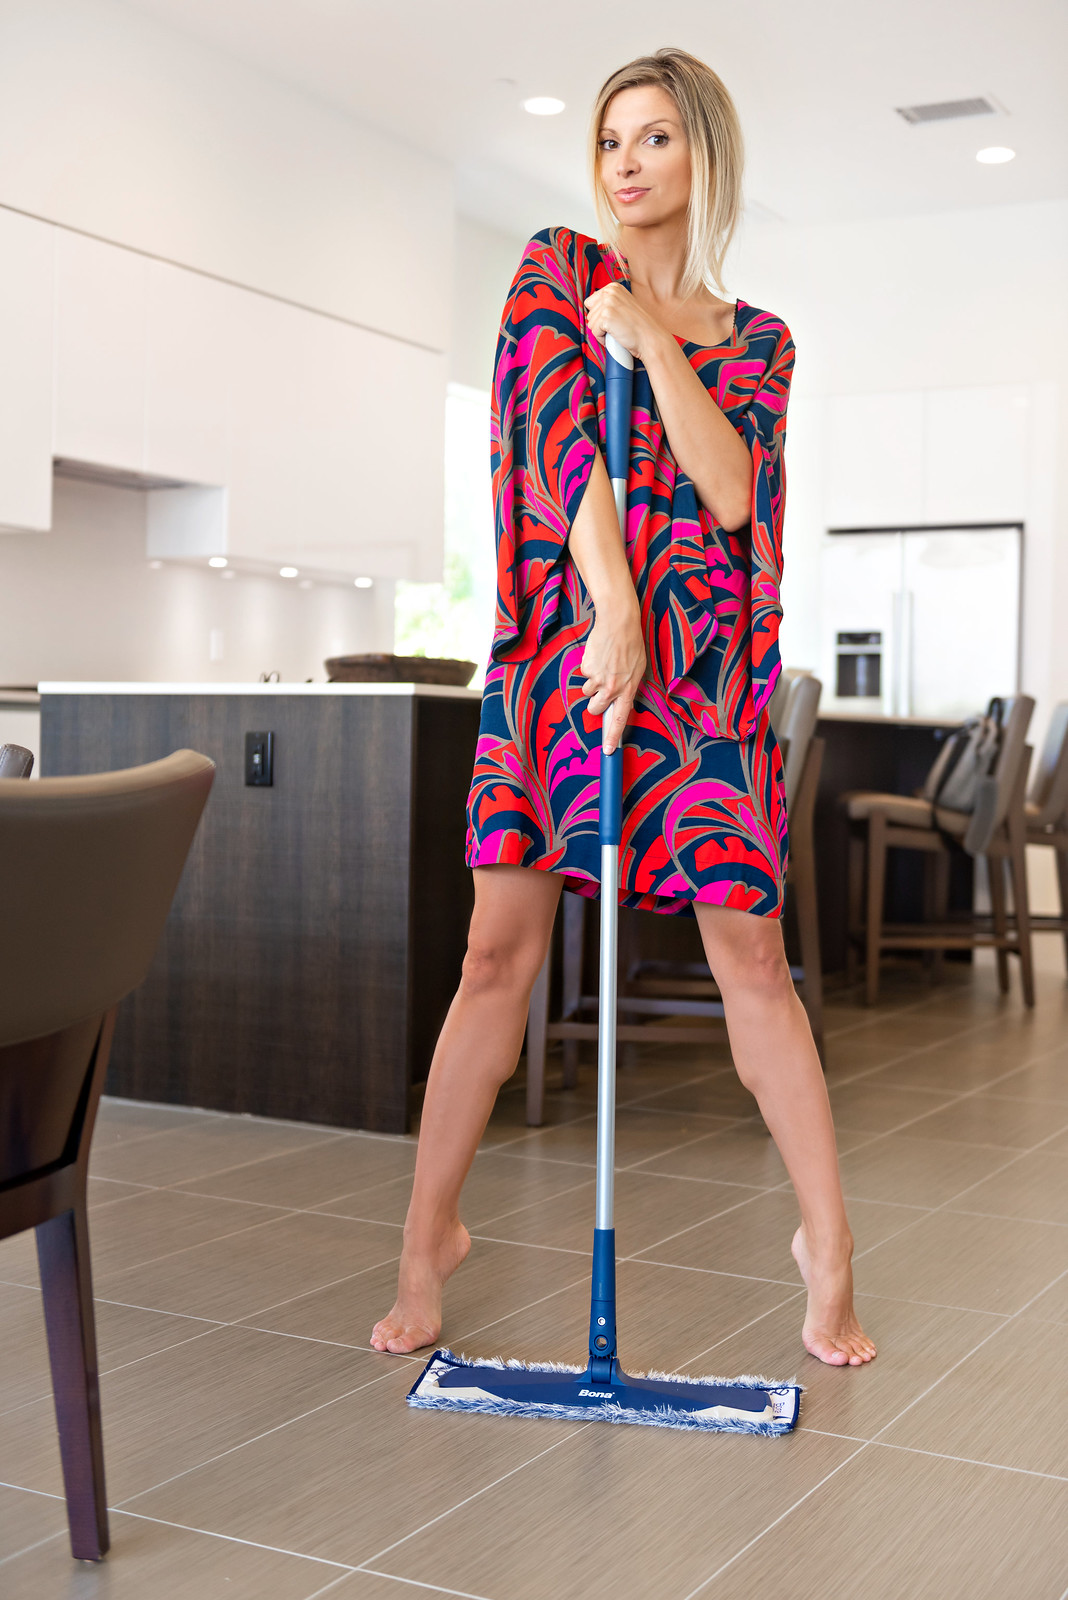 The Easiest Way To Clean Your Hard Surface Floors In The